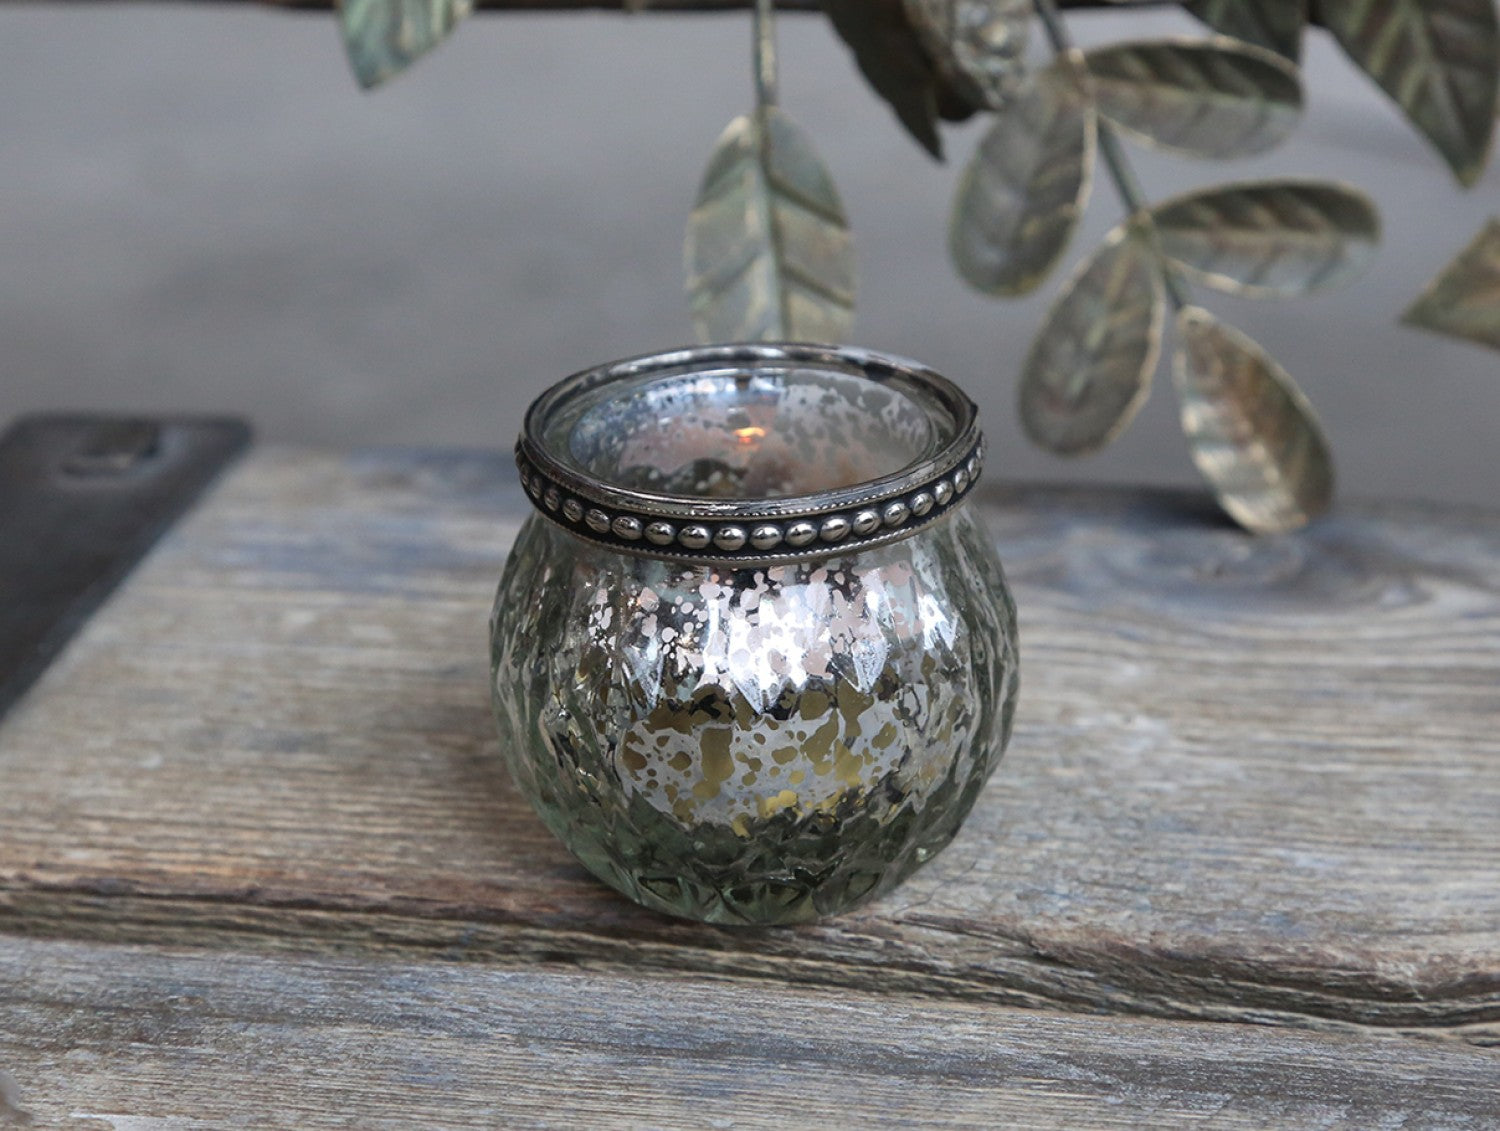 Antique silver tealight holder